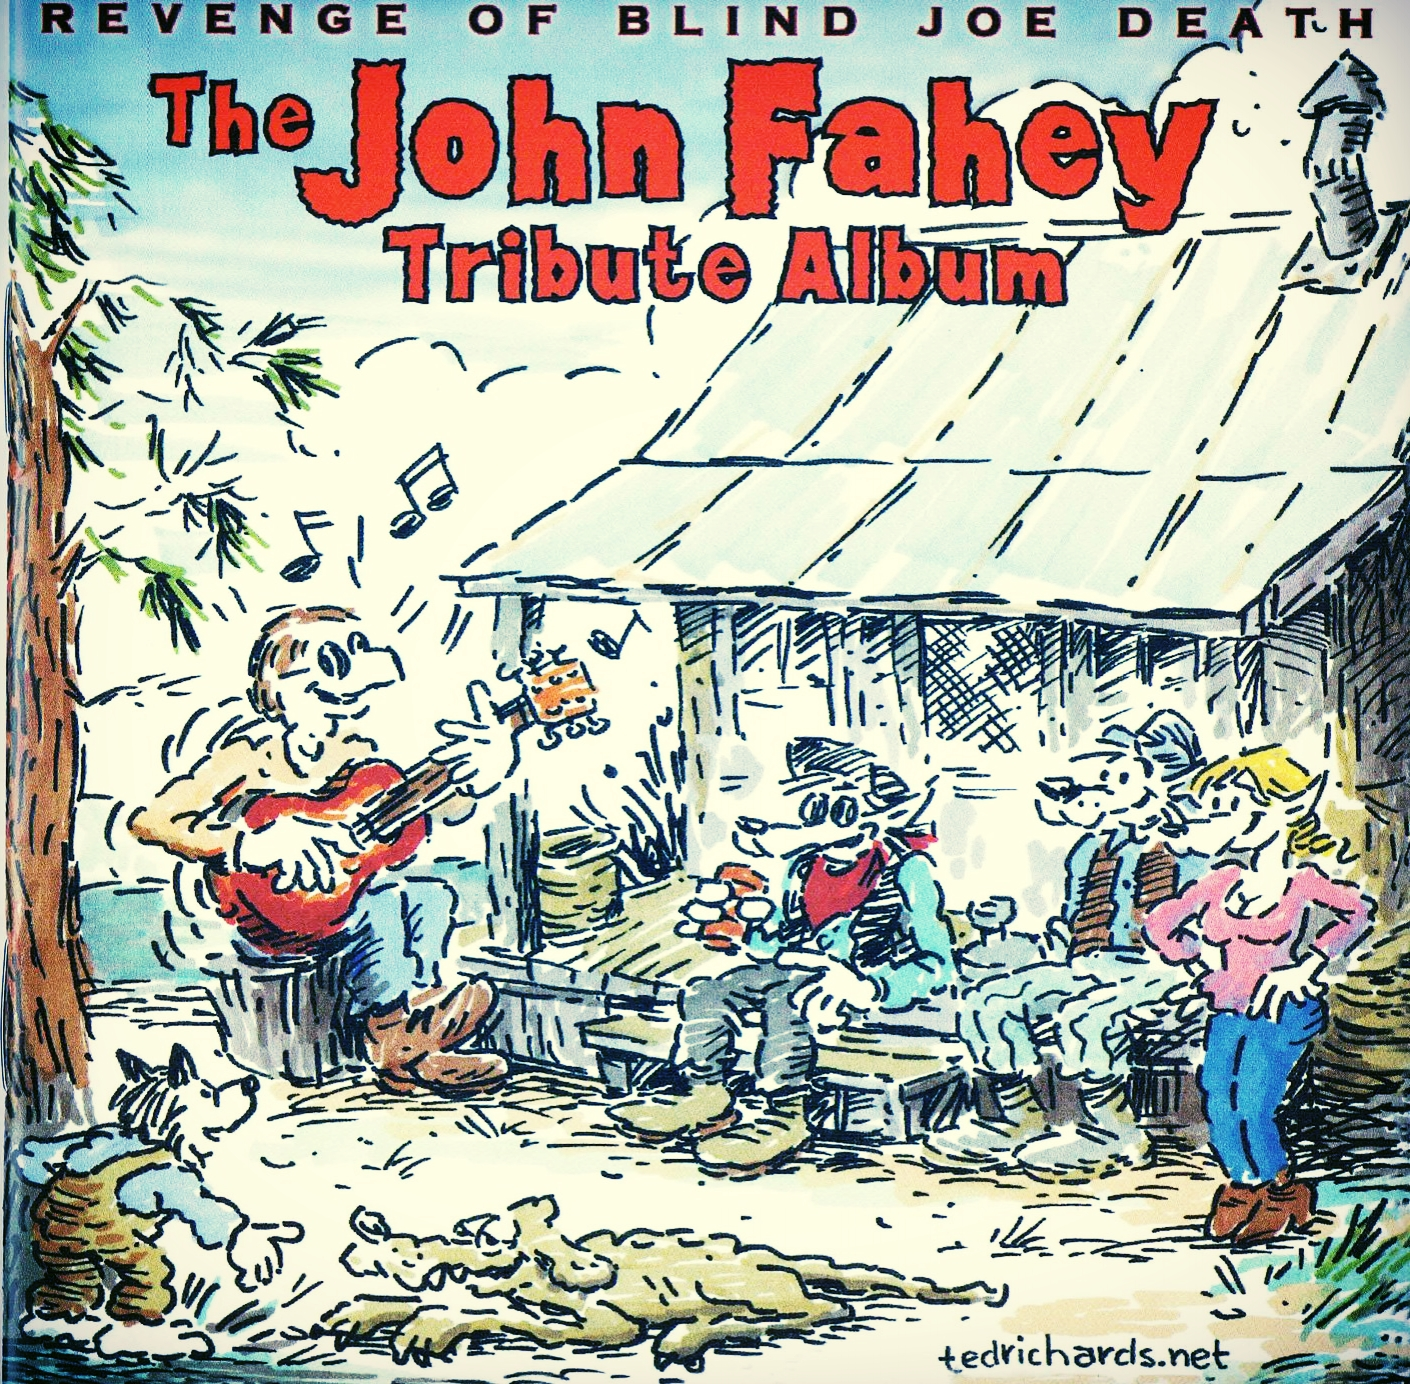 Various Artists, Revenge of Blind Joe Death: The John Fahey Tribute Album